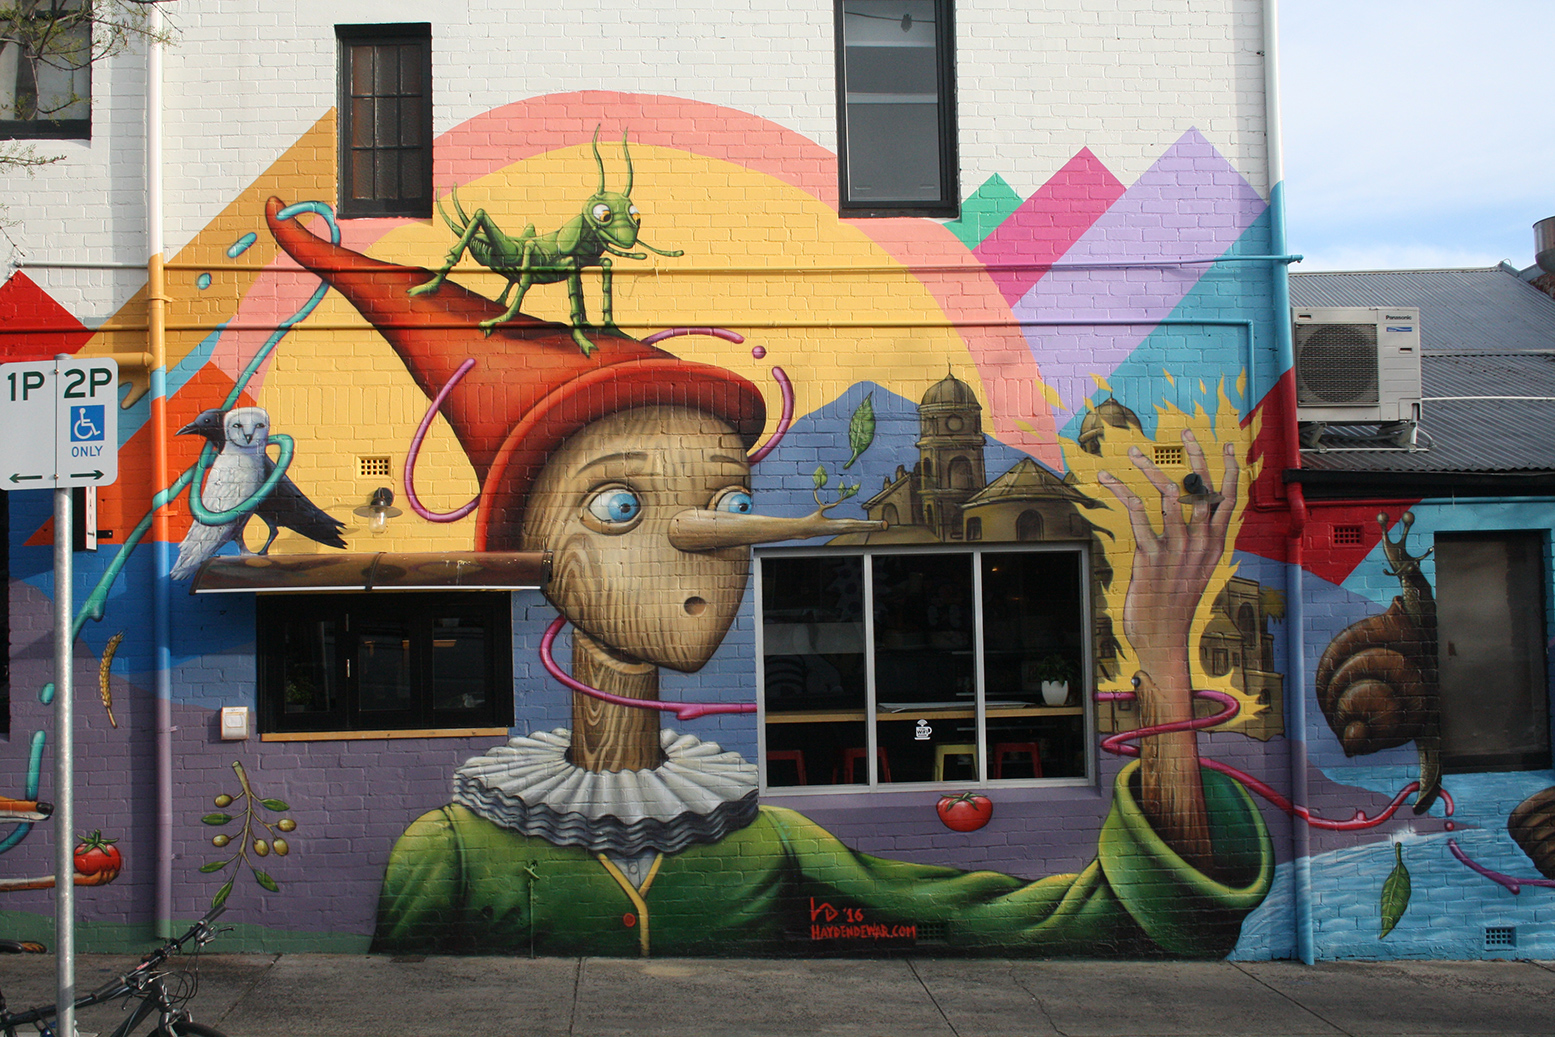 hayden dewar imagestation melbourne based illustrator storyboard pinocchio themed mural for son of a pizzaiolo restaurant